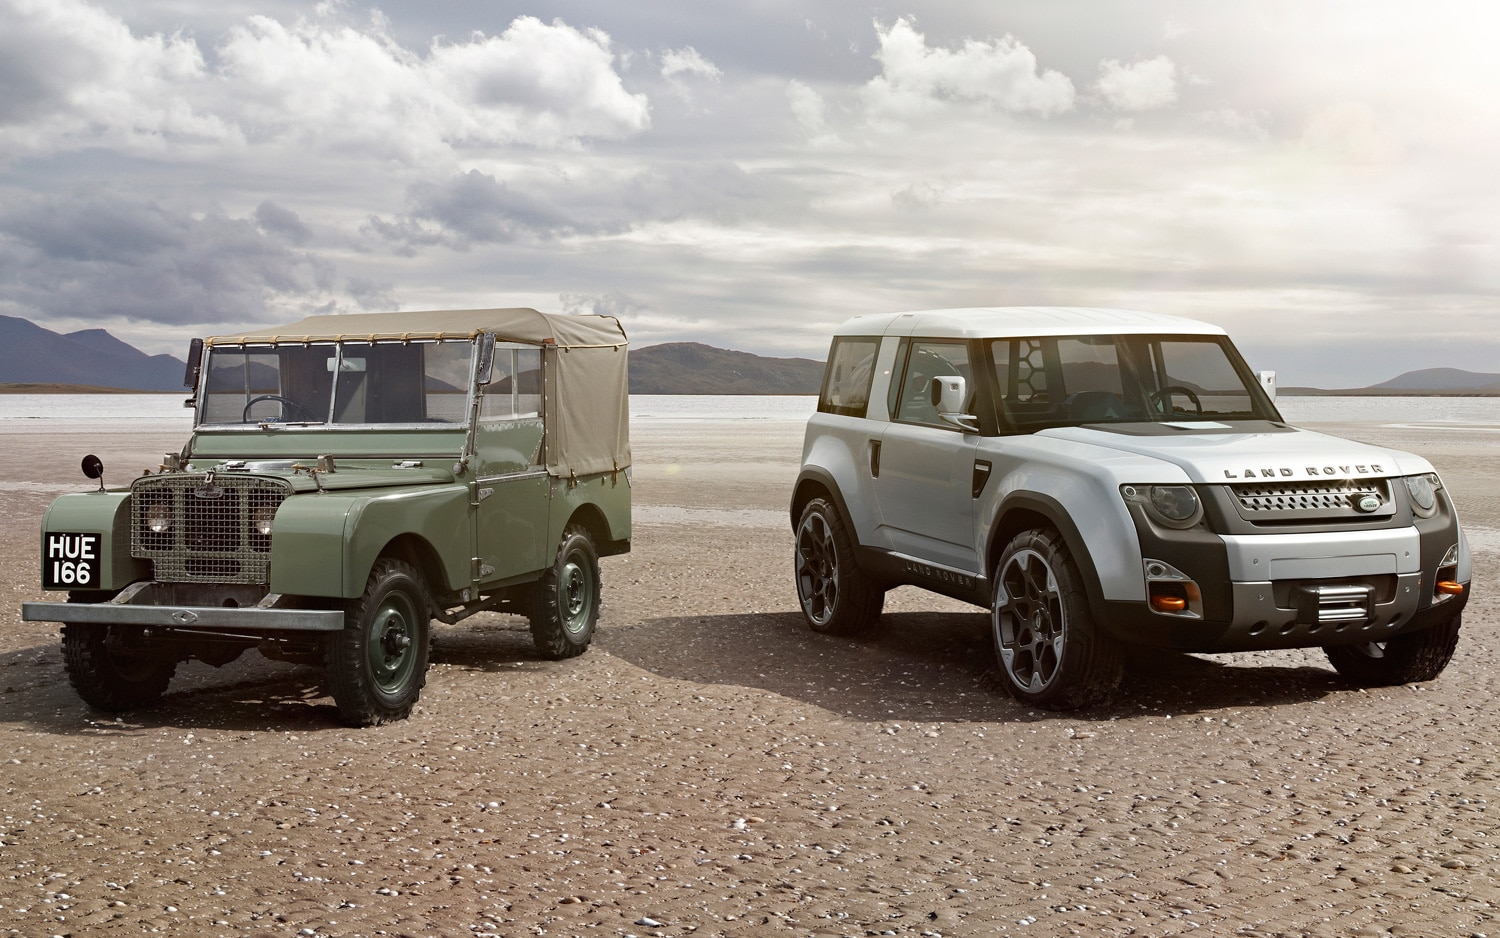 65 Years Of Land Rover Lead Image With DC100 Concept1